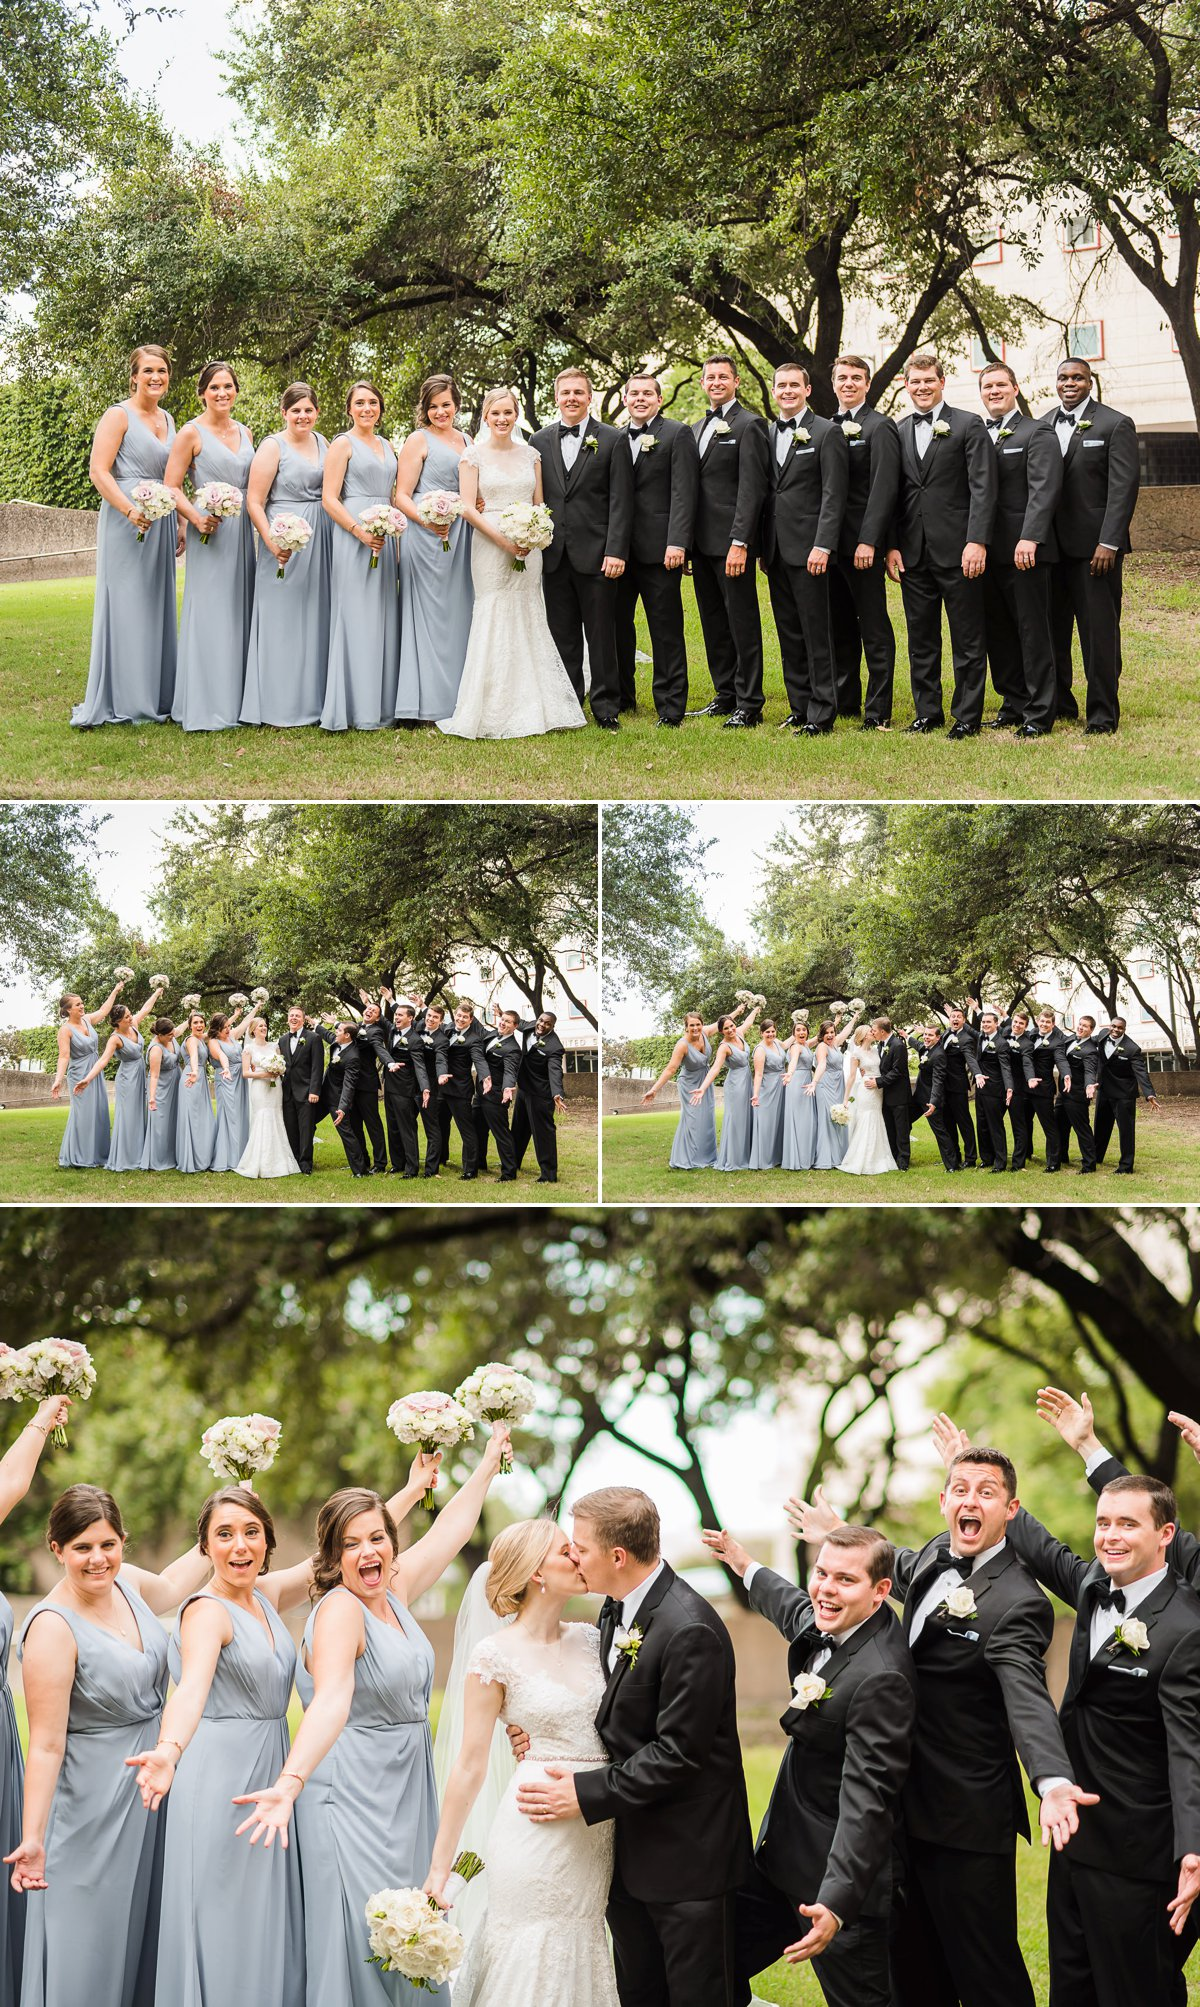 The Houston Club Wedding Party